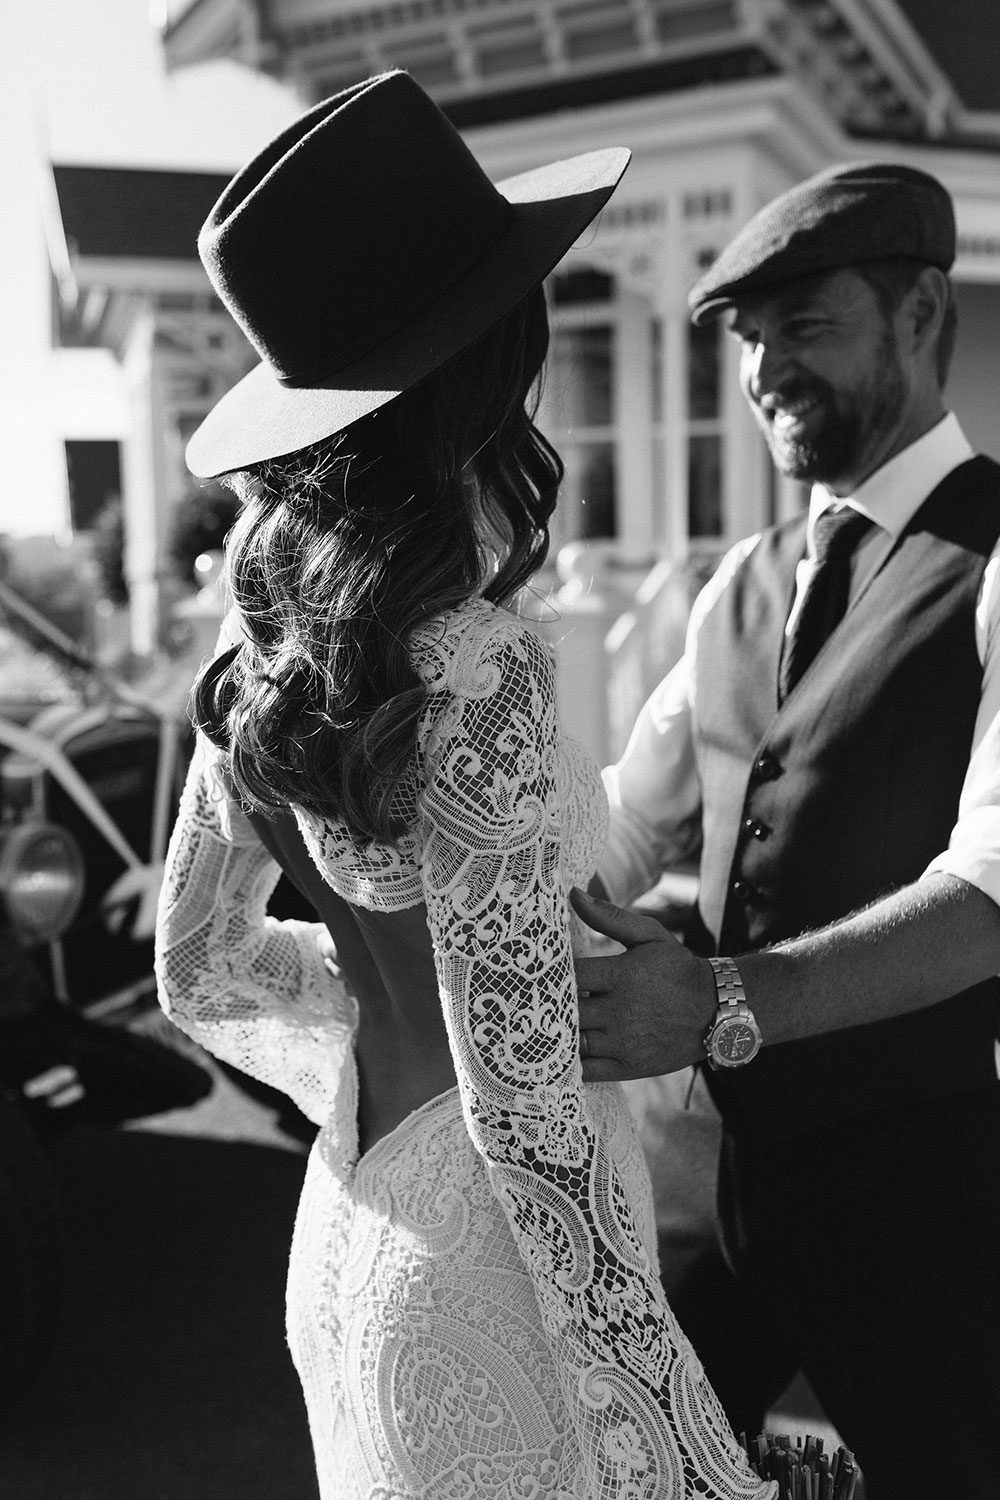 Bride wearing Sabine wedding gown by Auckland wedding dress maker Vinka Design, with French crochet lace detail and long sleeves - black and white image